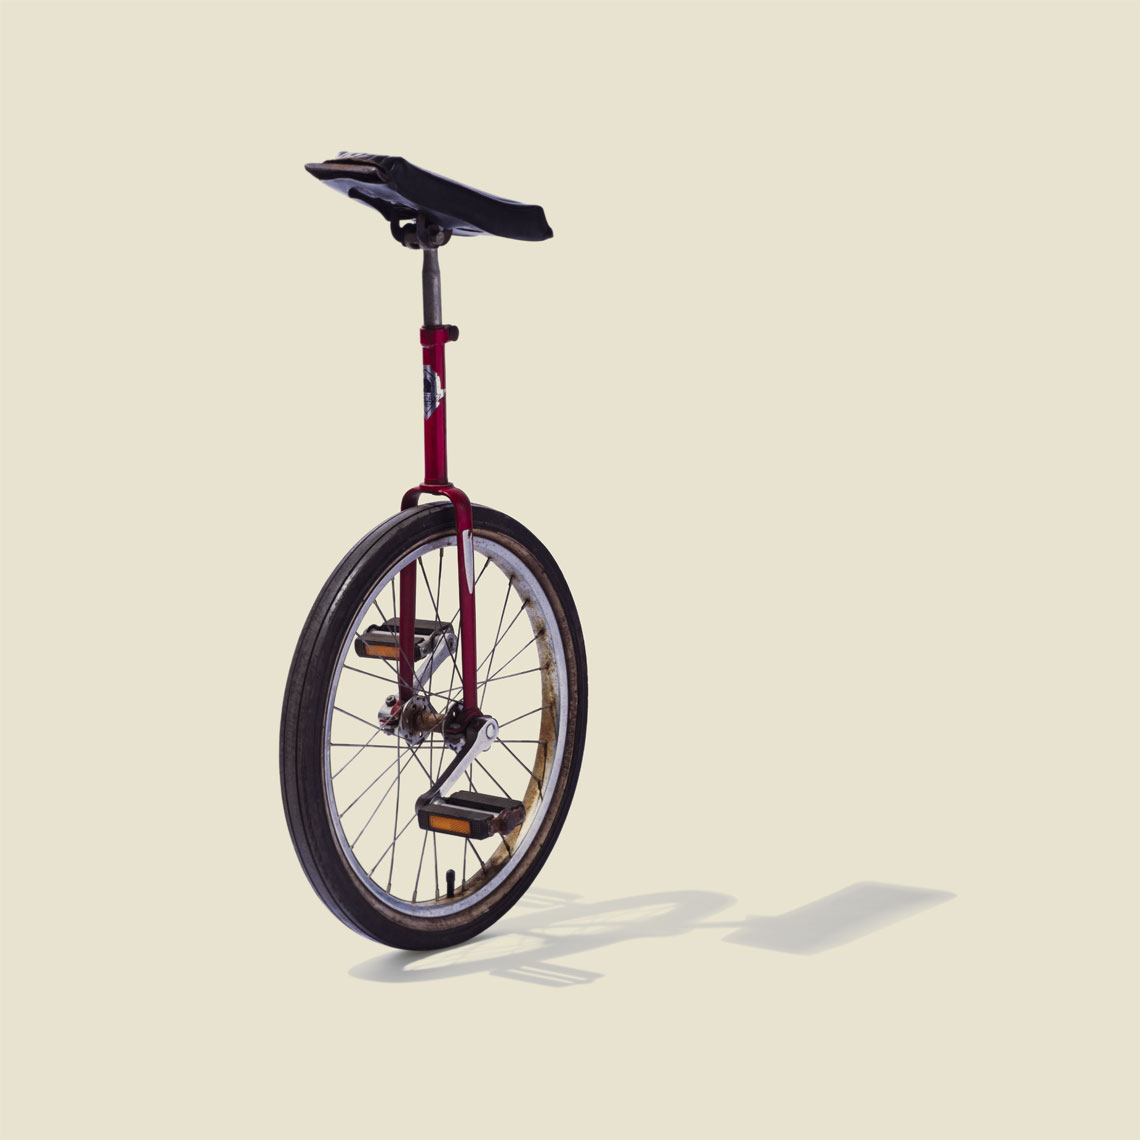 Still Life, Editorial, Advertising and Corporate Studio Photography Jacksonville, Florida  Conceptual Unicycle bike Portrait